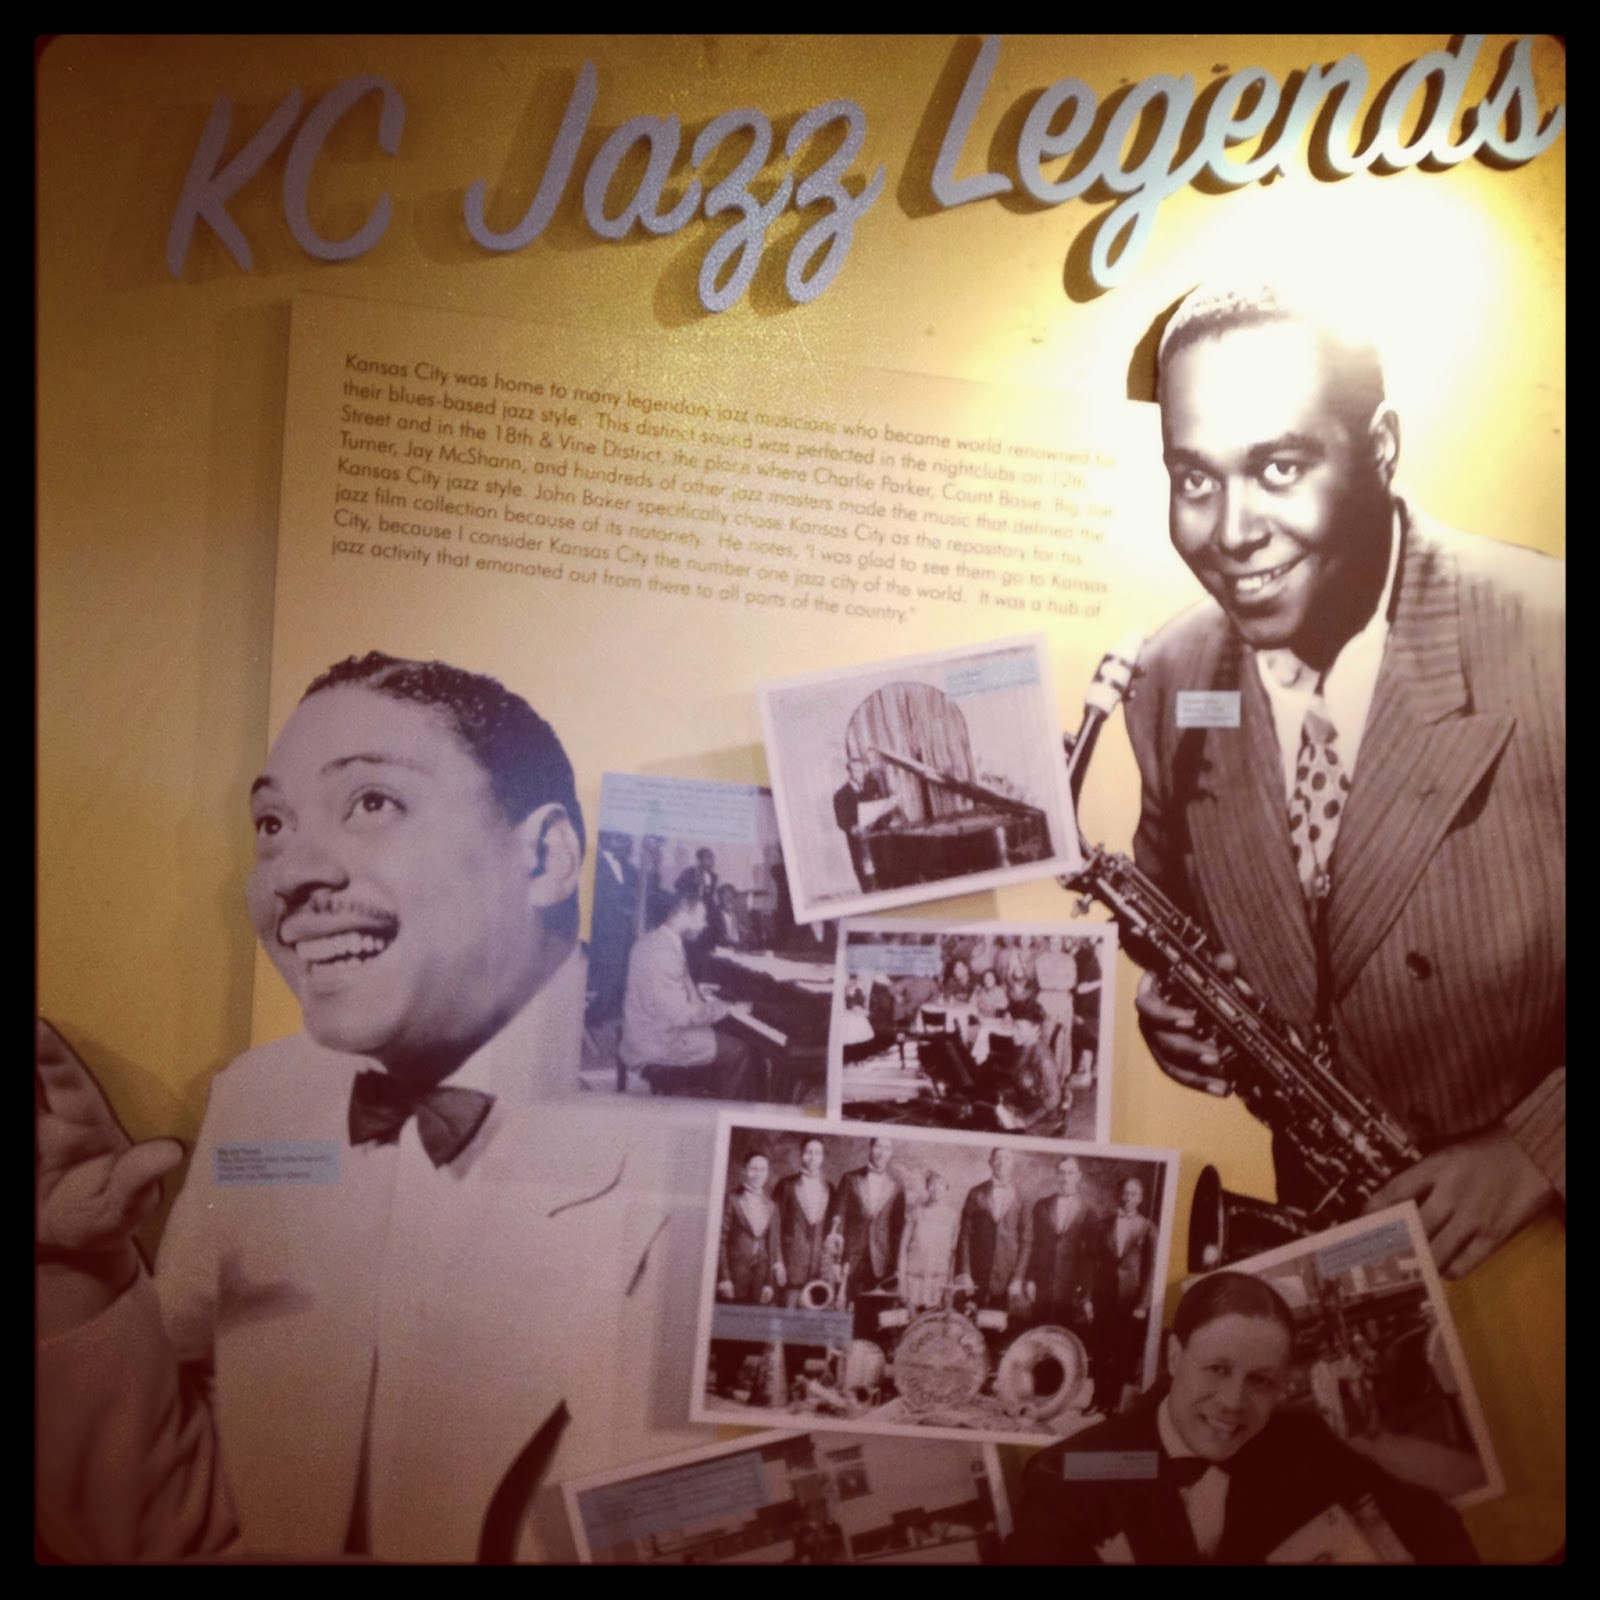 Kansas City Jazz Legends - Charlie Parker, Duke Ellington, Ella Fitzgerald  American Jazz Museum